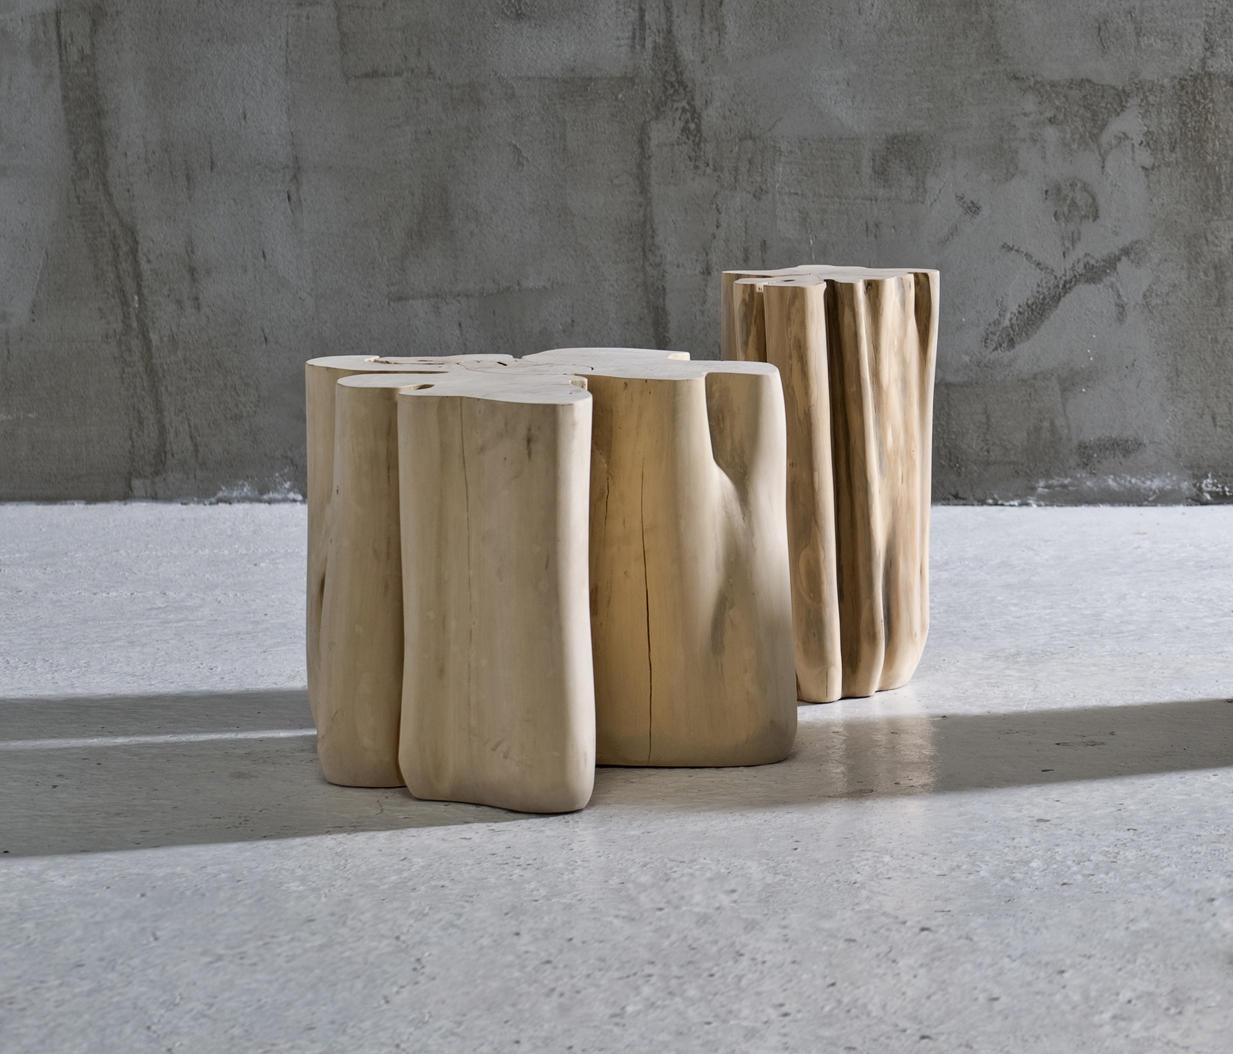 Brick 06 modular seating elements from gervasoni for Tronc bois deco